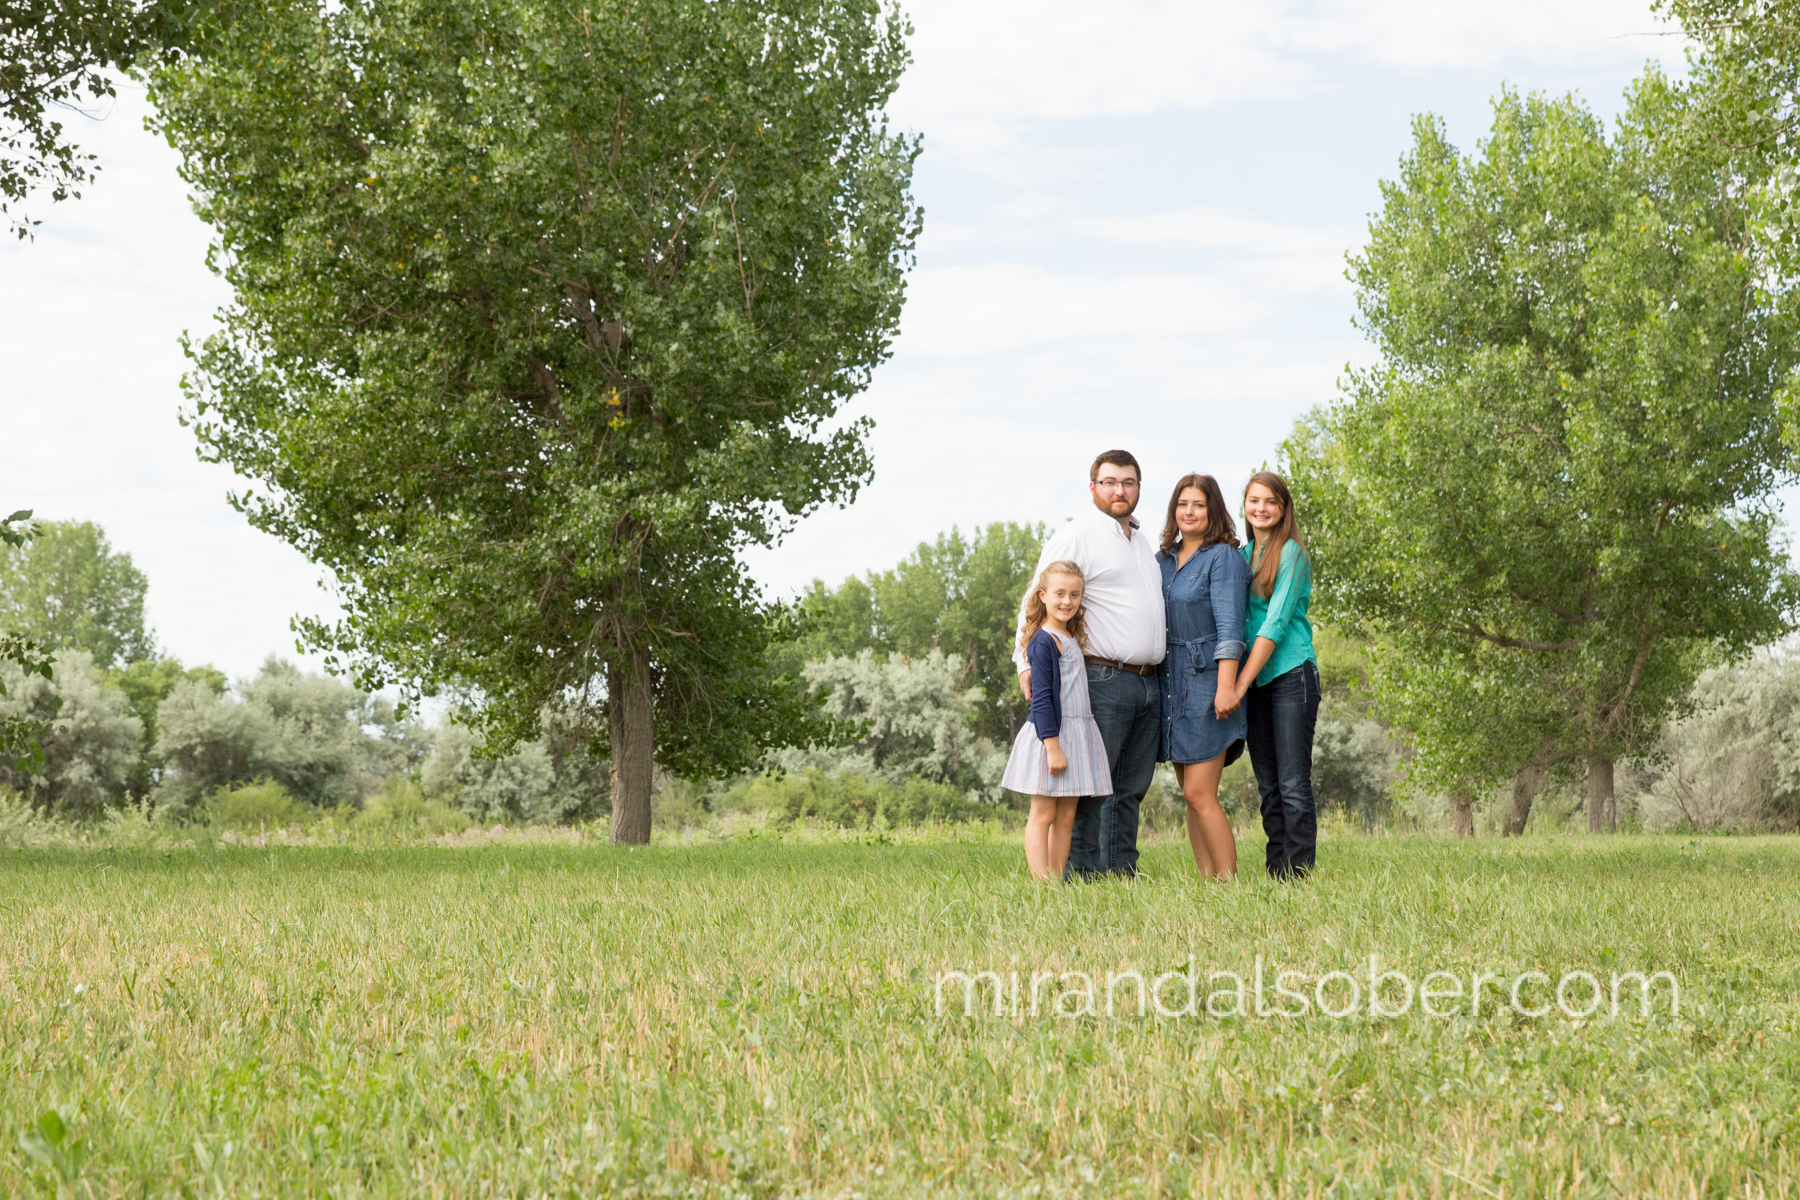 miranda l. sober, fort collins, family photography